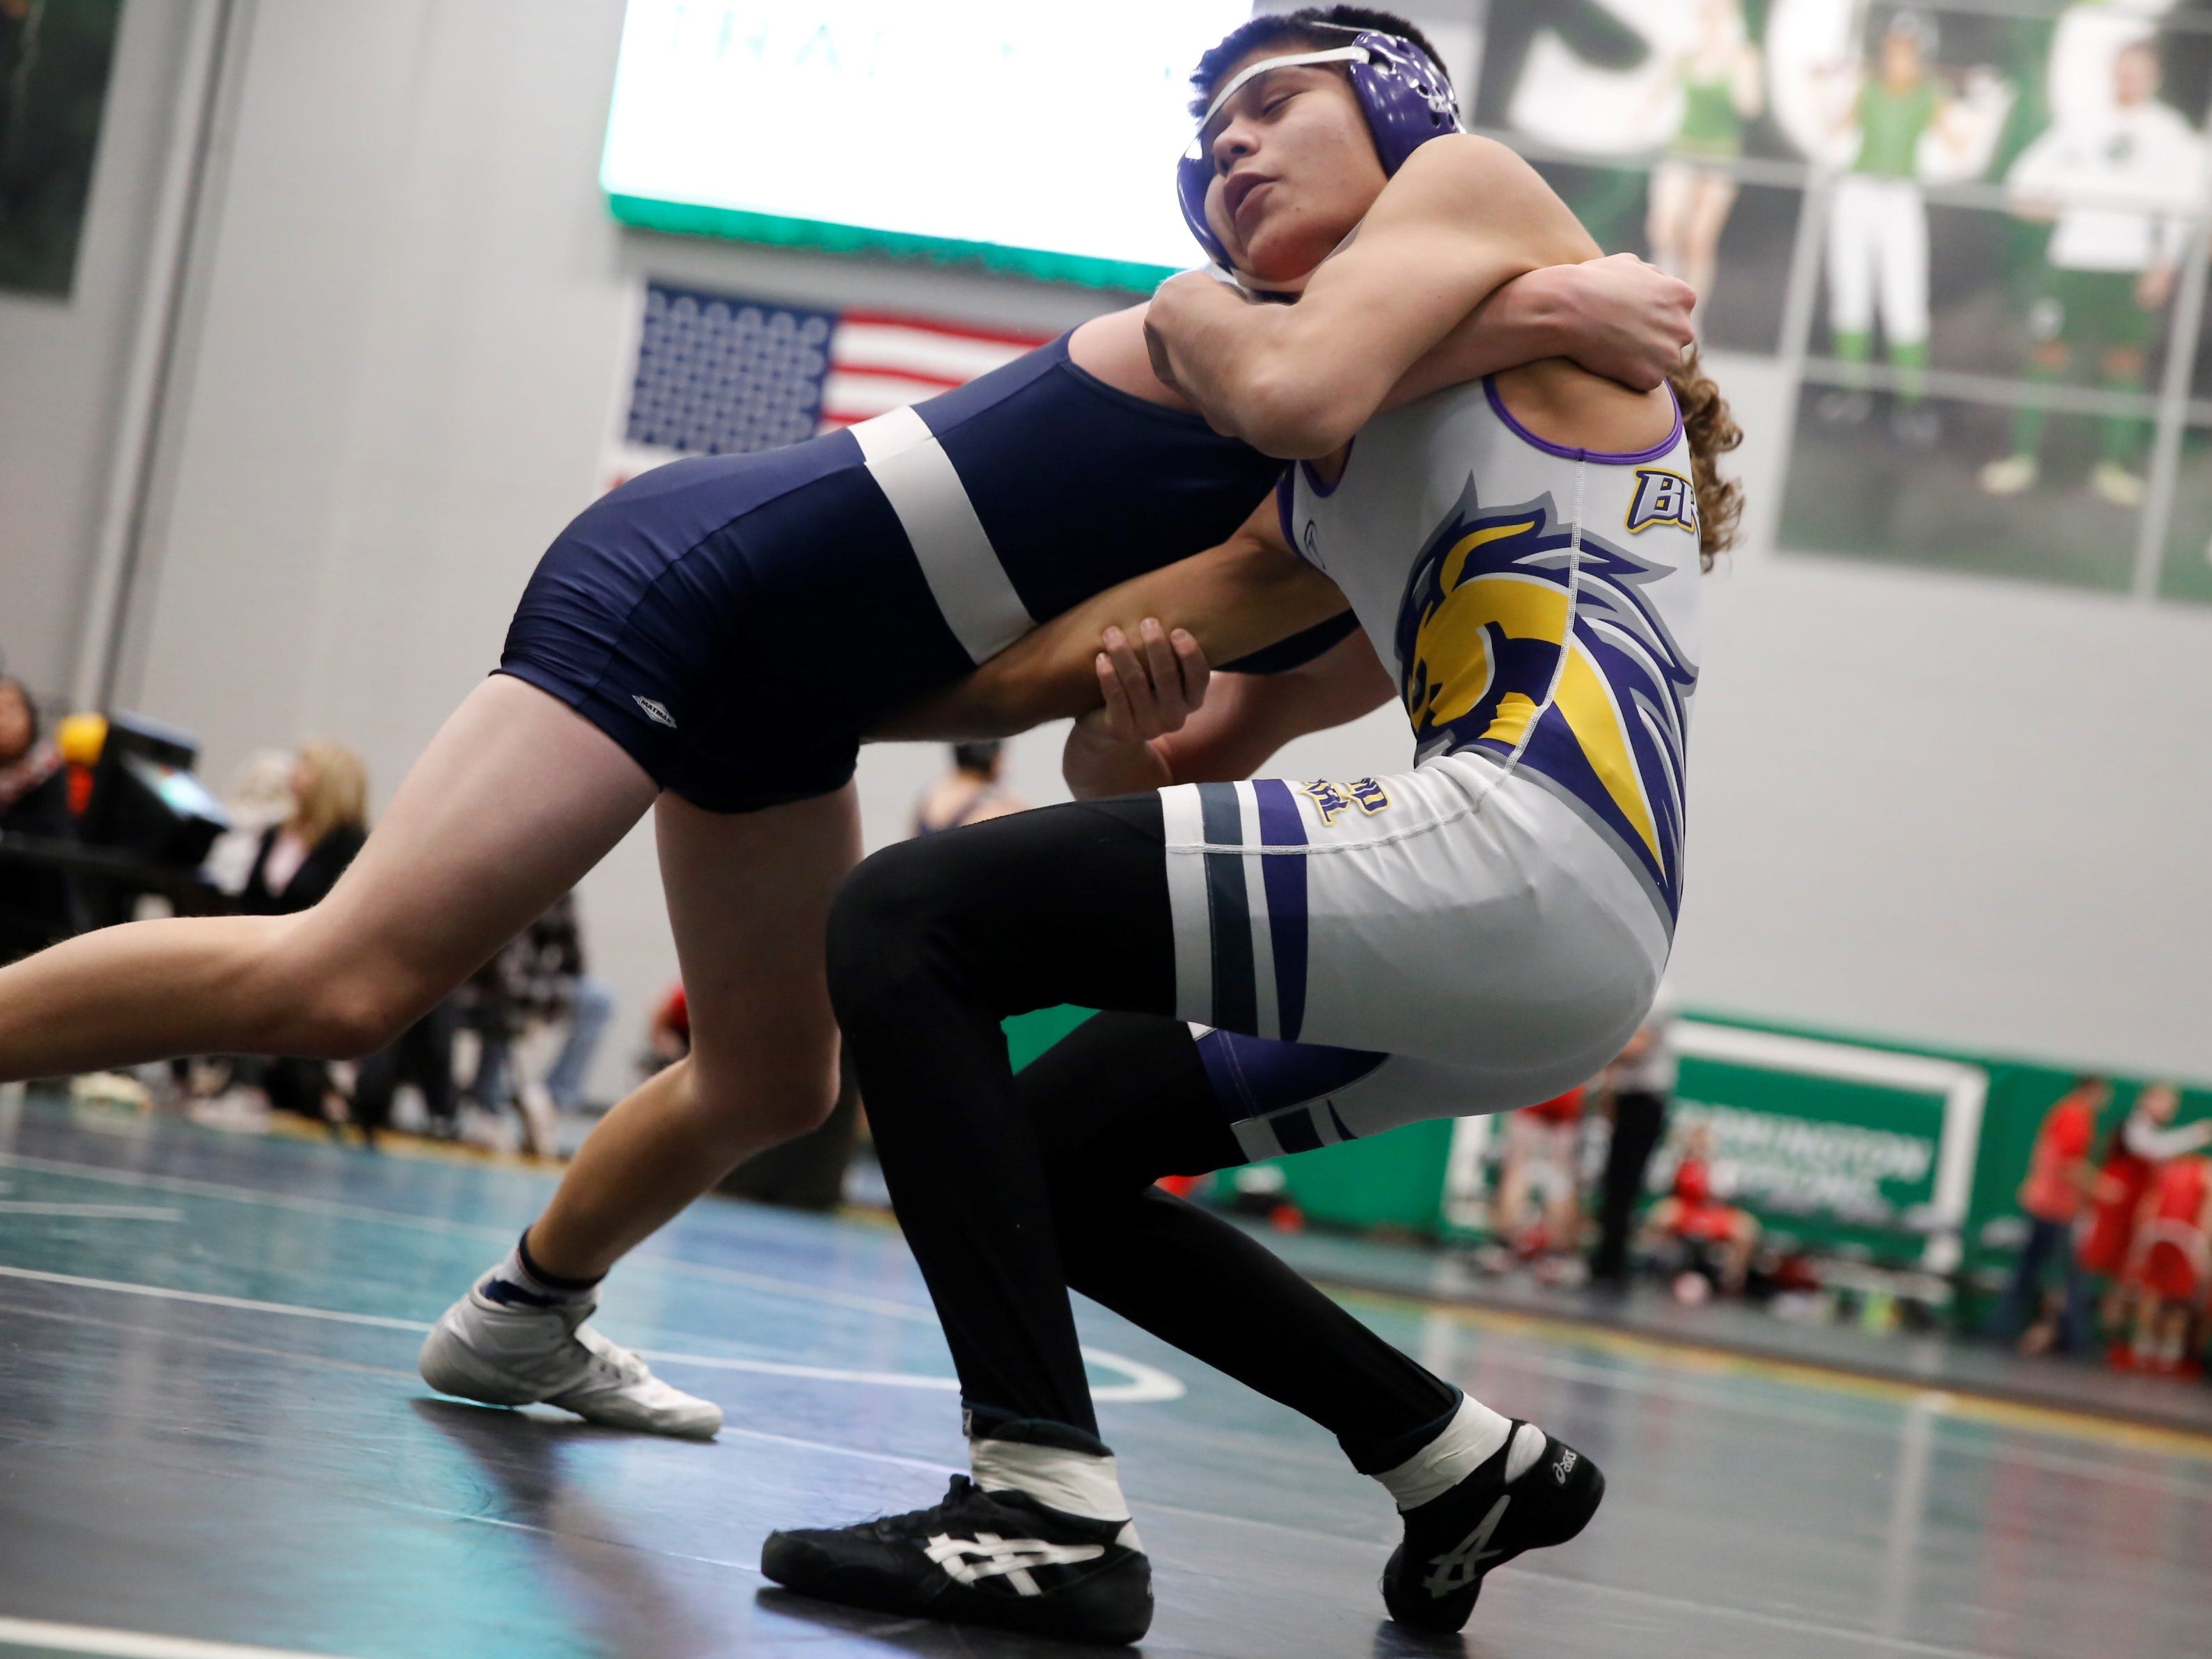 Kirtland Central's Dominique Benally withstands Piedra Vista's Trey Brock during a 138-pound division match at Thursday's Farmington Scorpion Duals. Benally won at the 1:52 mark in the first round.